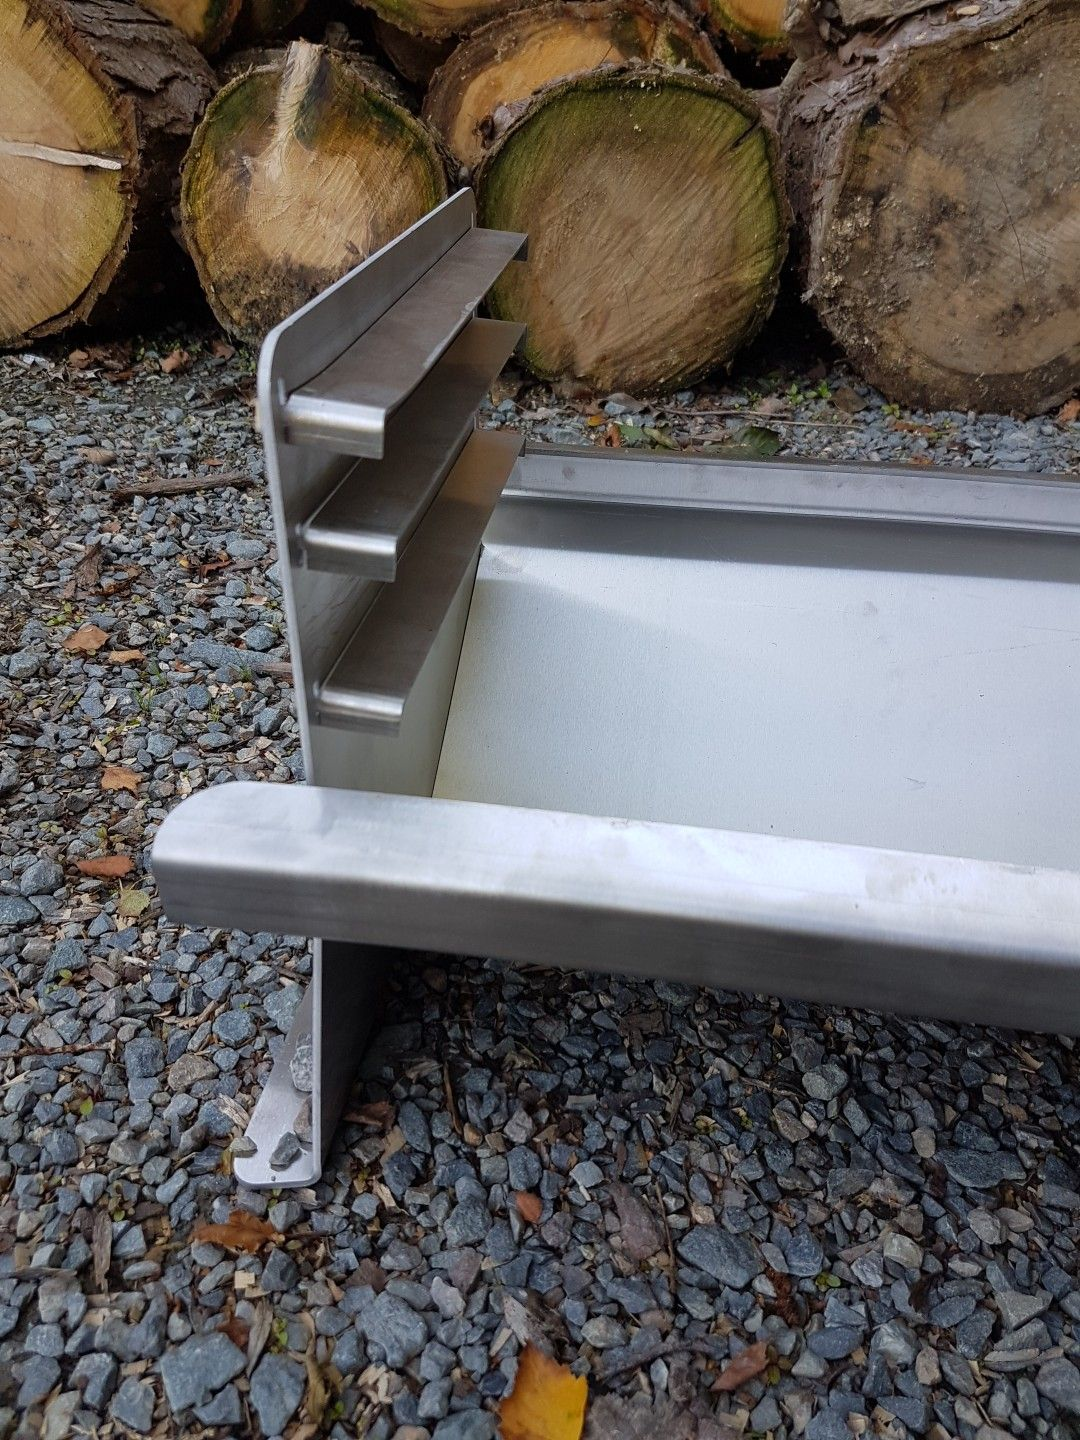 Pin by Botany Stainless Steel on Braaibeque Stainless